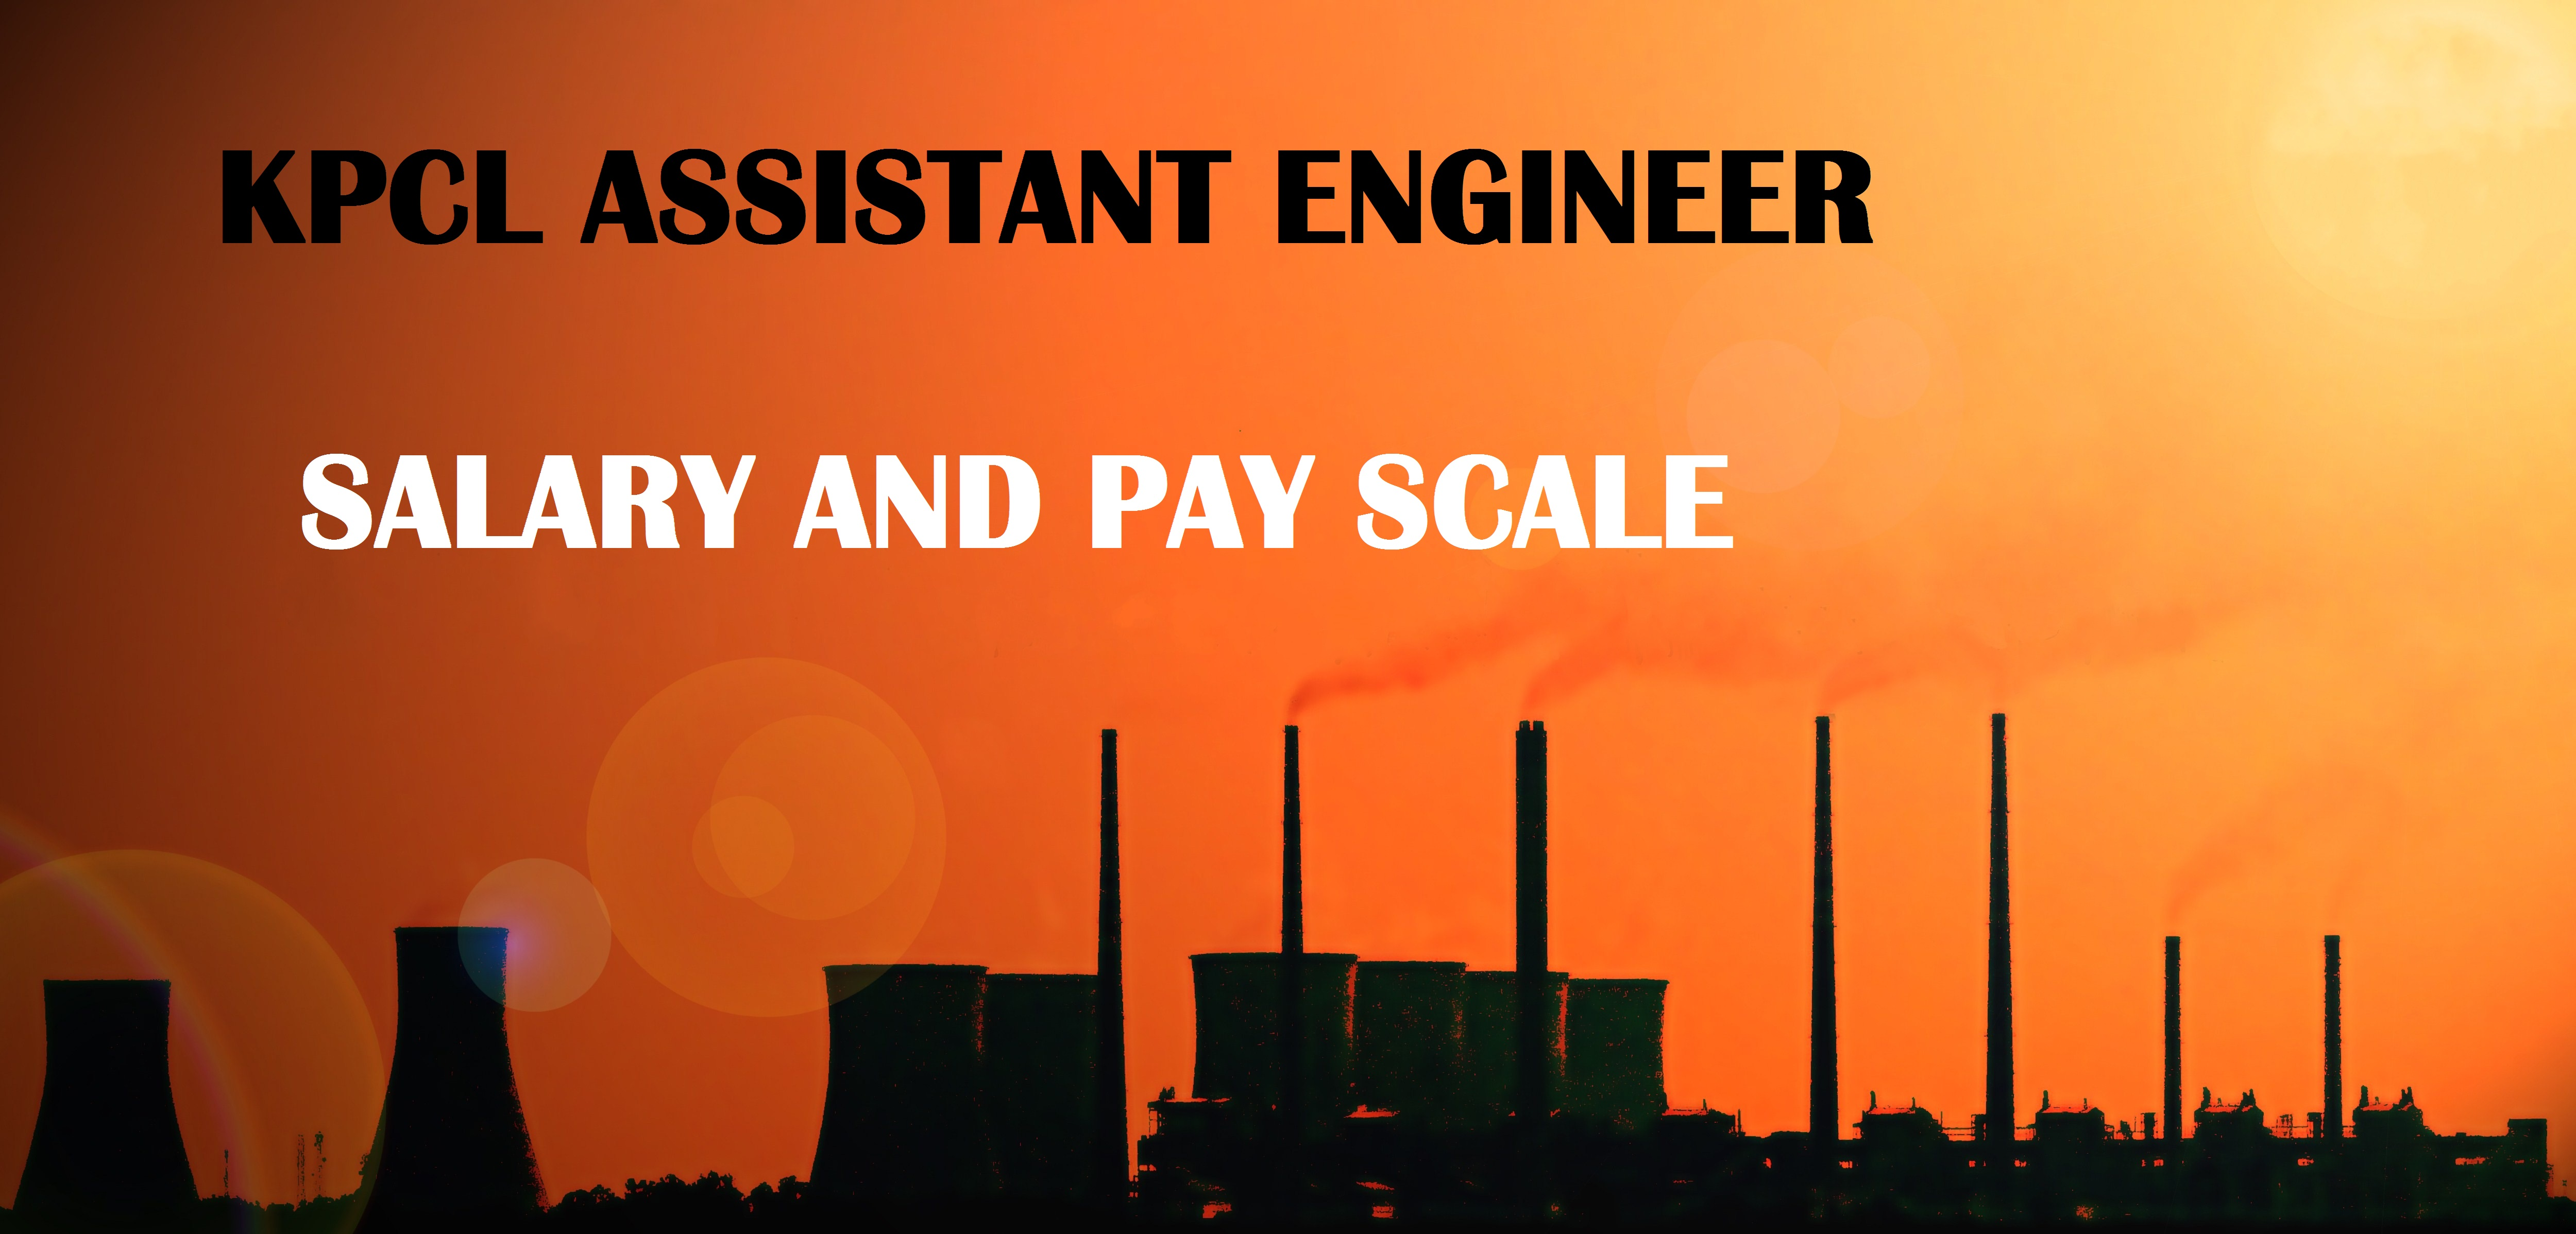 KPCL Assistant Engineer Salary and Pay scale AE